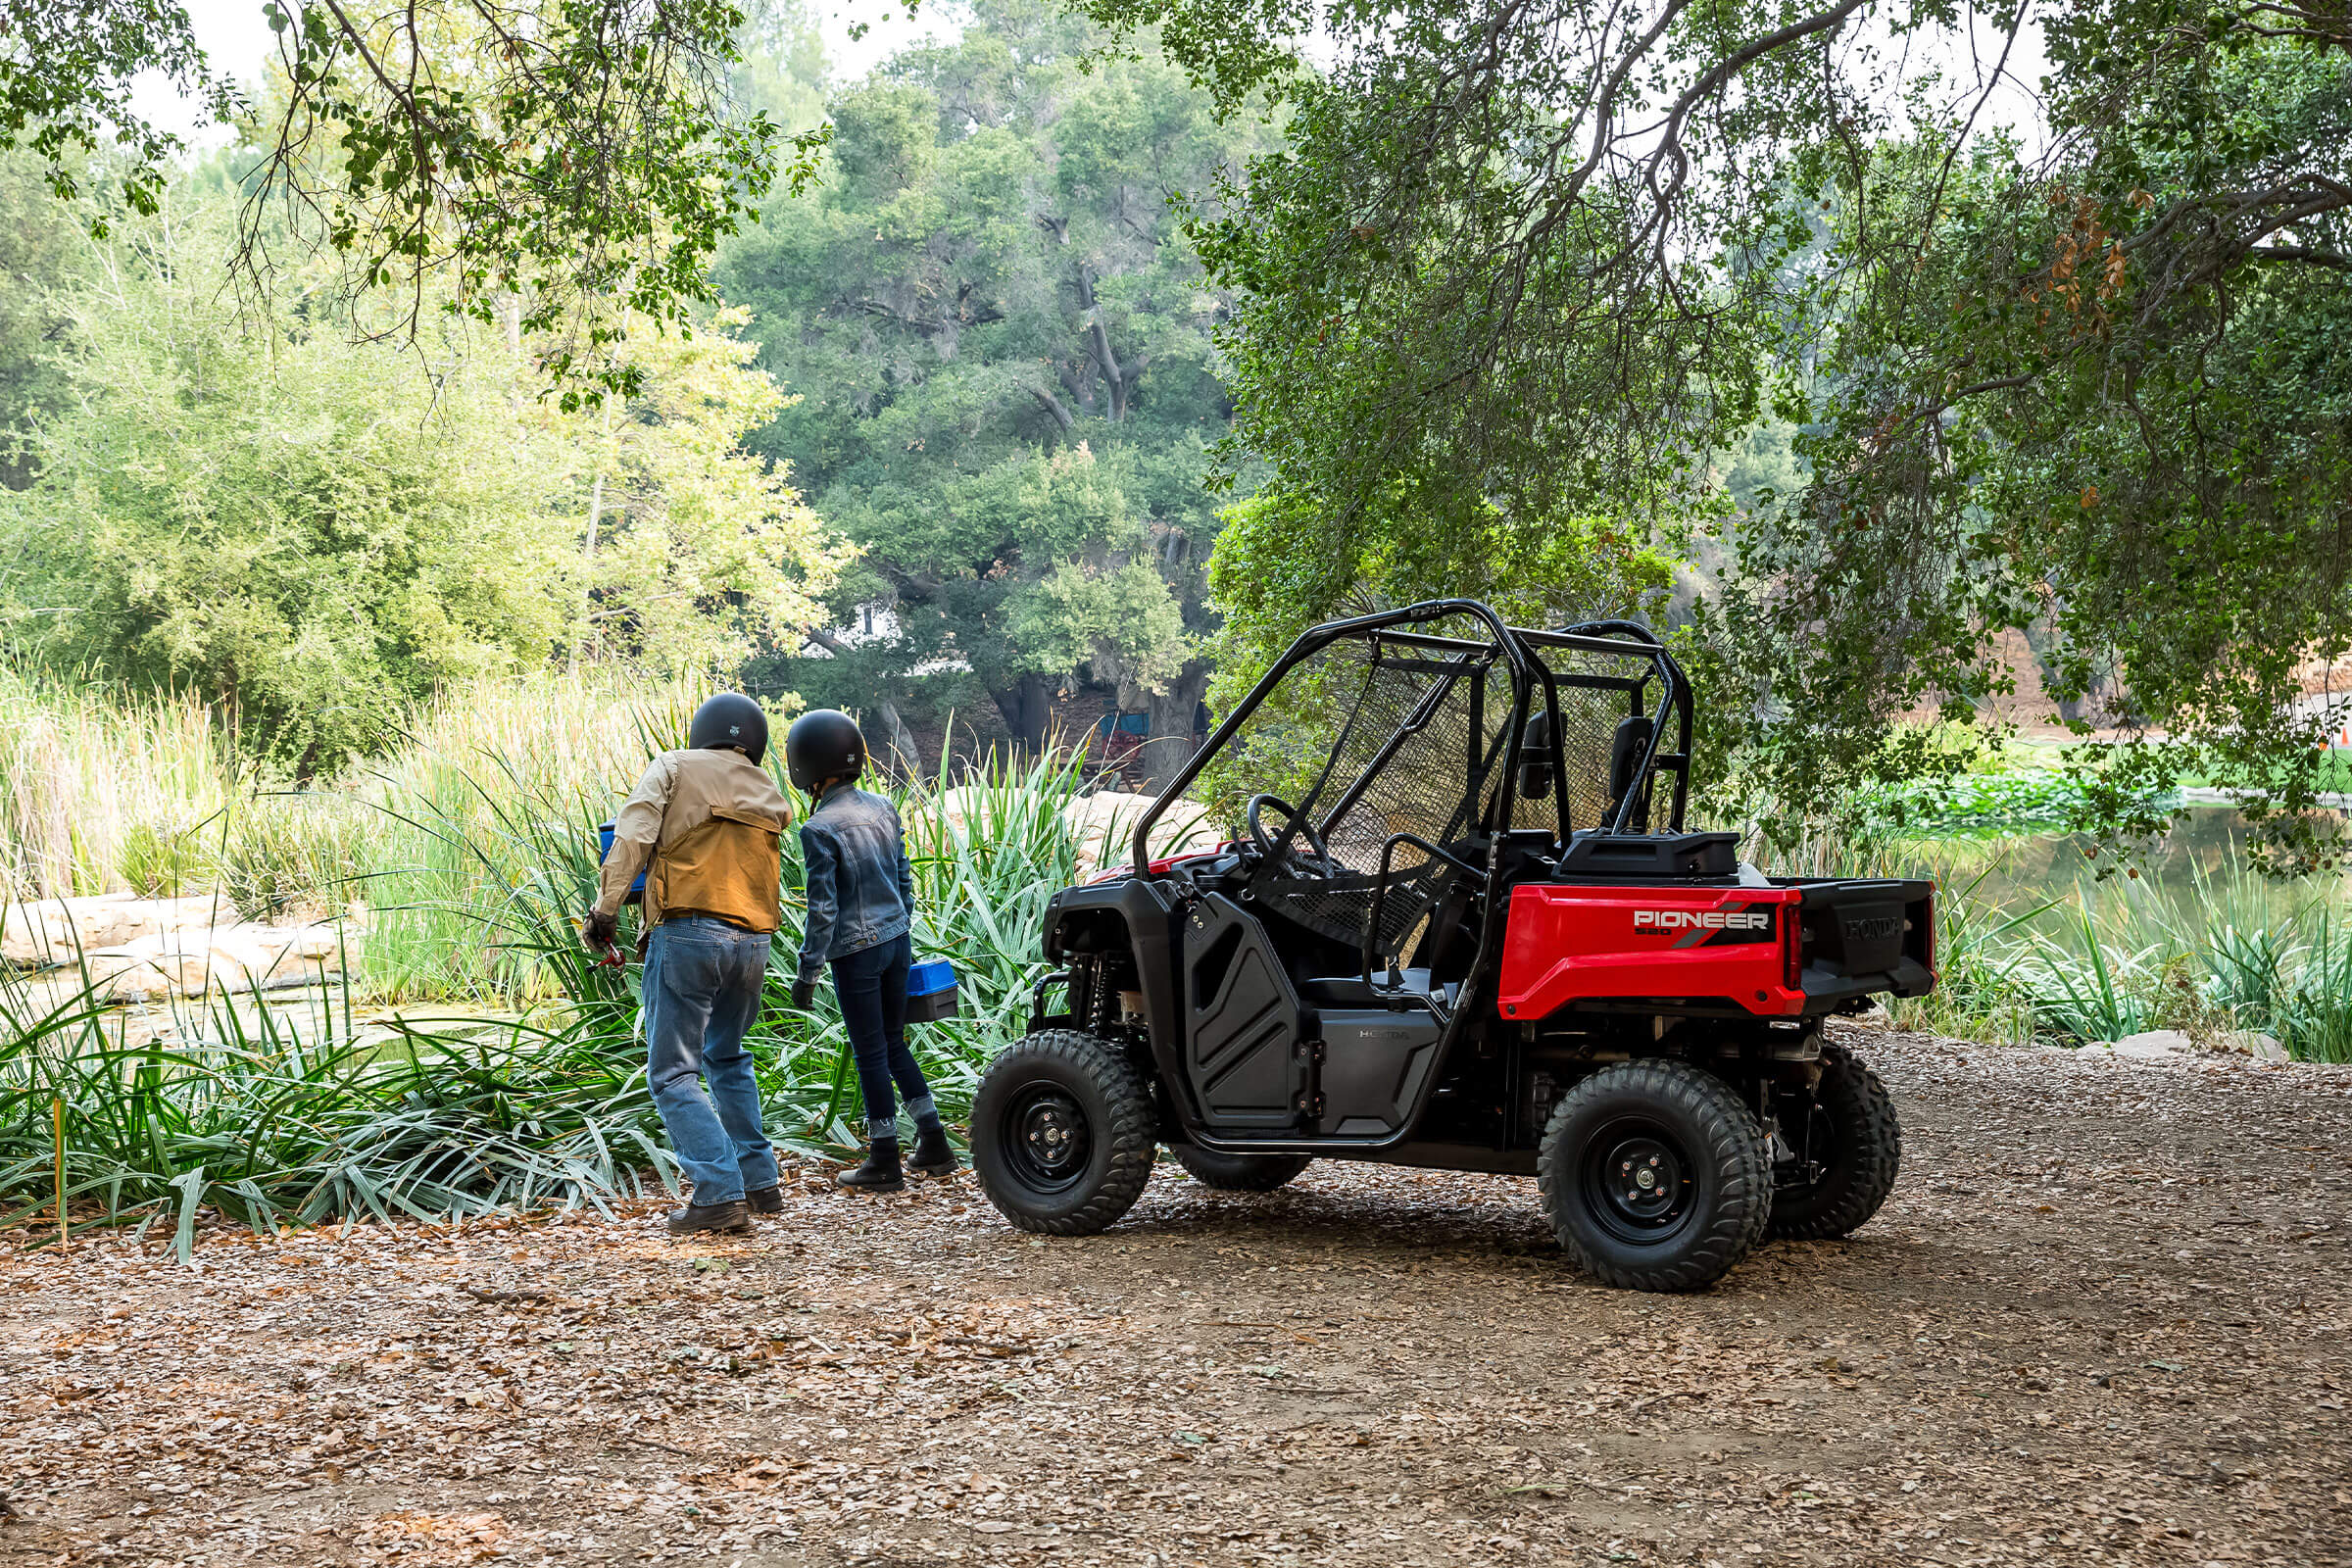 2021 Honda Pioneer 520 in Huntington Beach, California - Photo 2